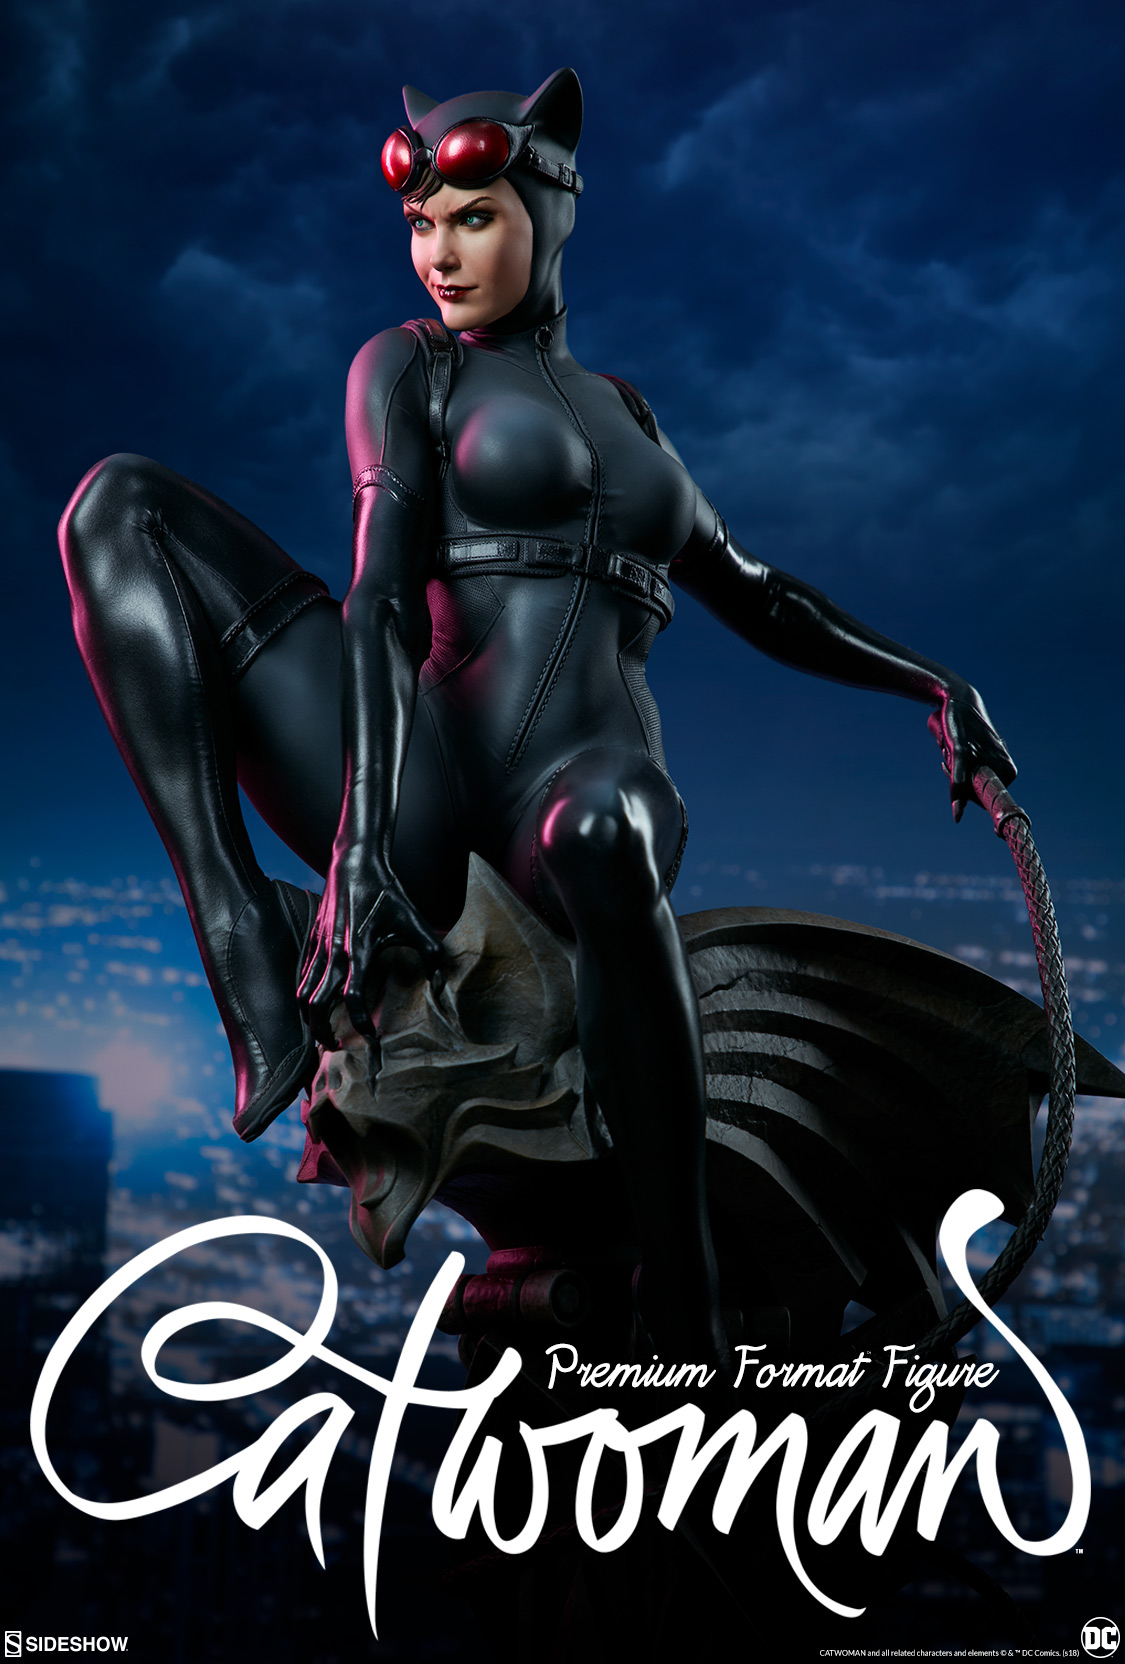 Catwoman Premium Format Figure | Sideshow Collectibles